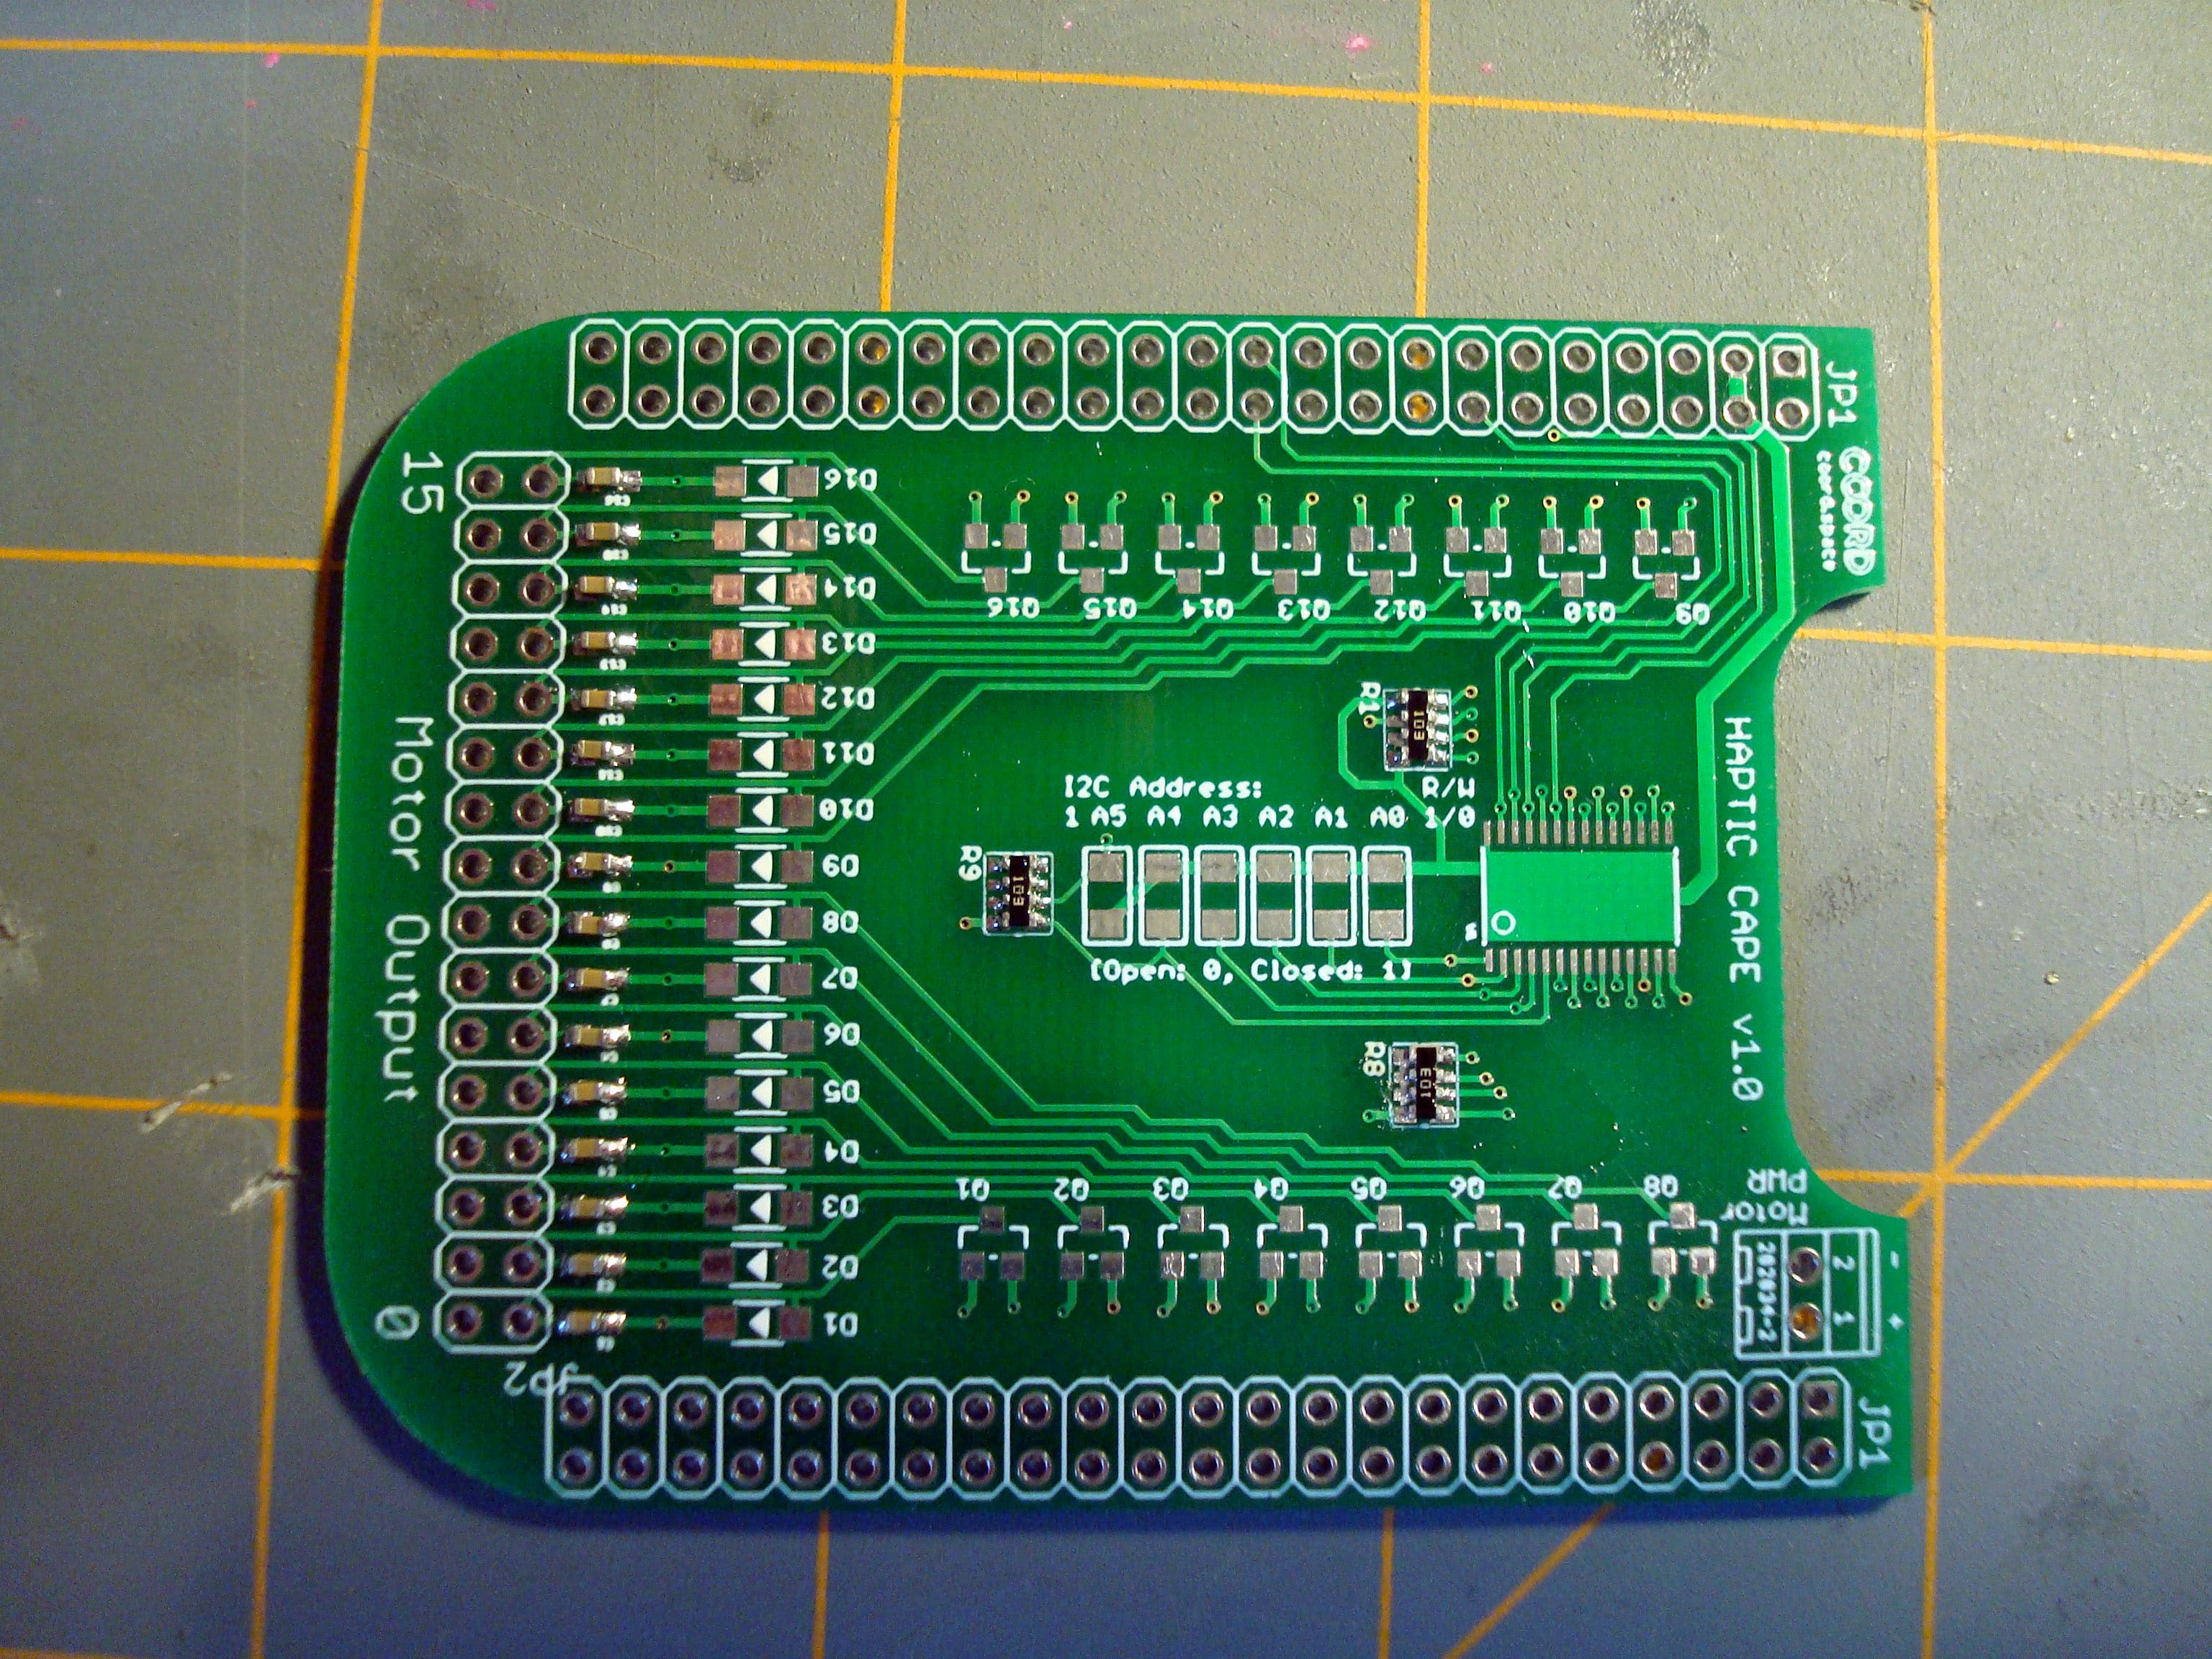 Now go around the part and flow small solder amounts onto each pad. Flux can be really helpful for this to prevent solder bridges. In the end your board should look similar to what's shown here.